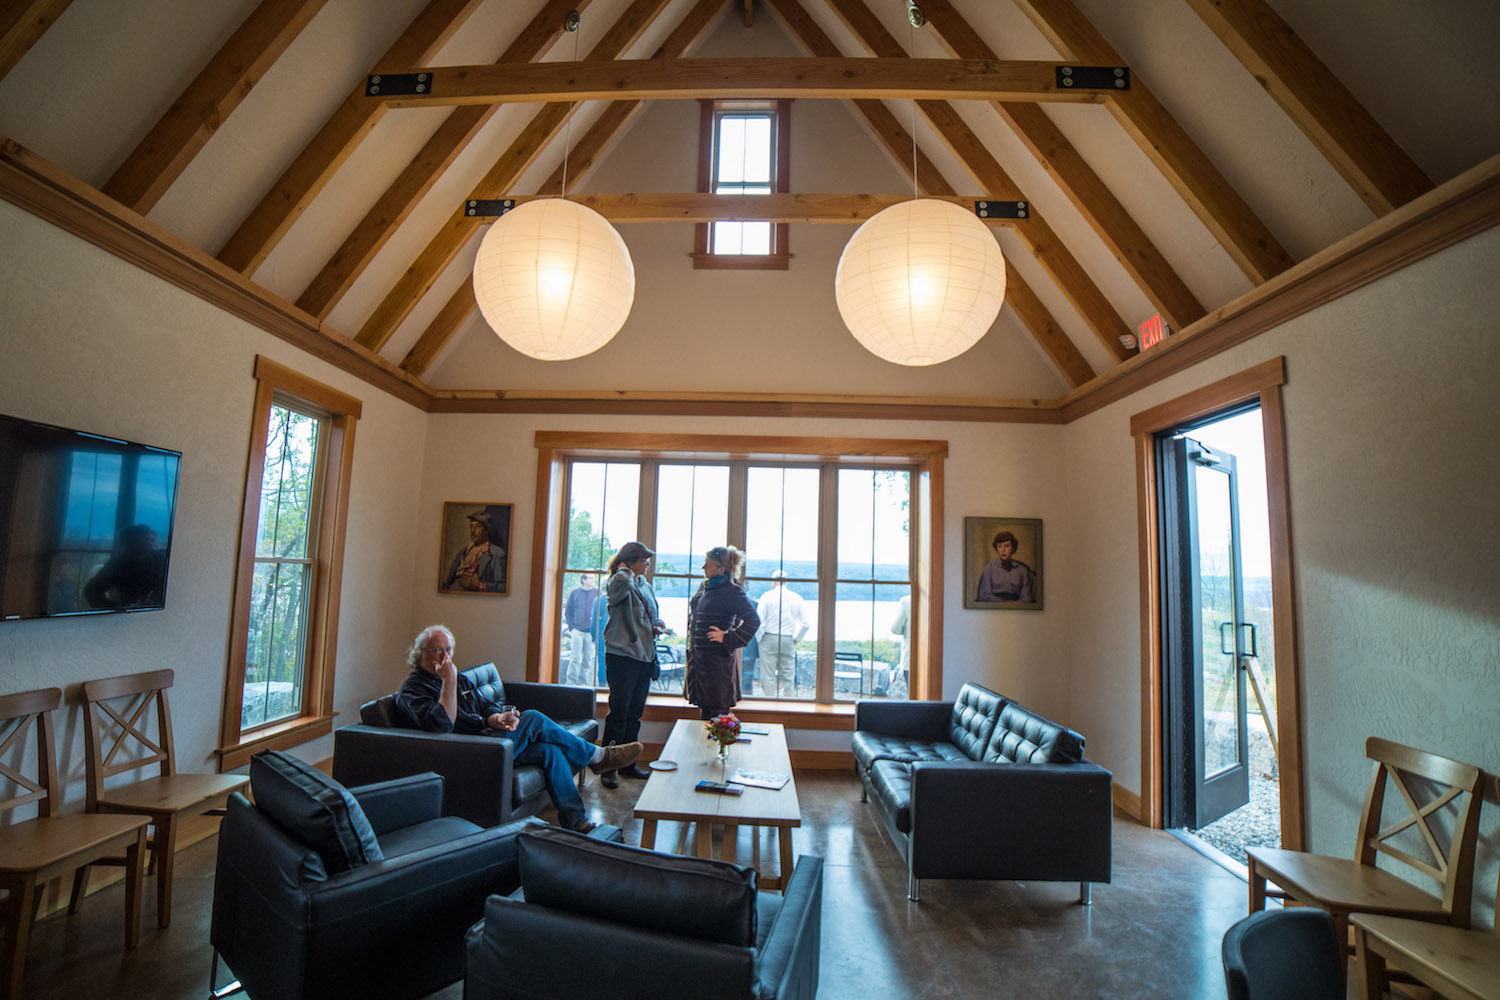 Inside La Bourgade On Seneca's 24/7 community and fitness center 'Meeting House', available for private events (residents book for free).